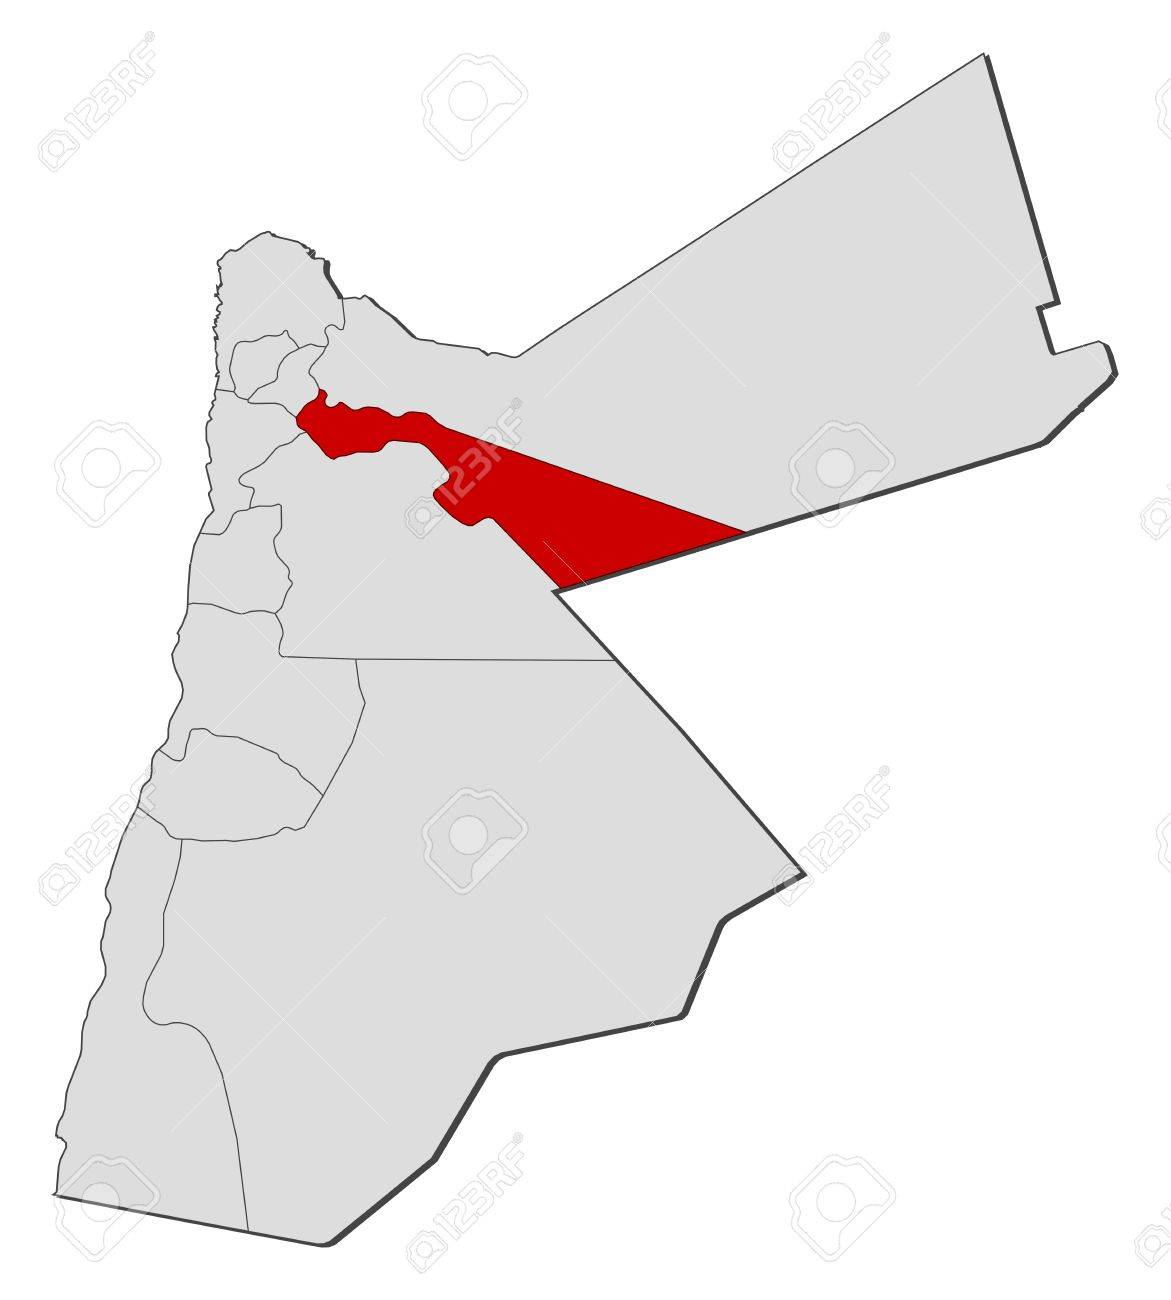 Political Map Of Jordan.Political Map Of Jordan With The Several Governorates Where Zarqa